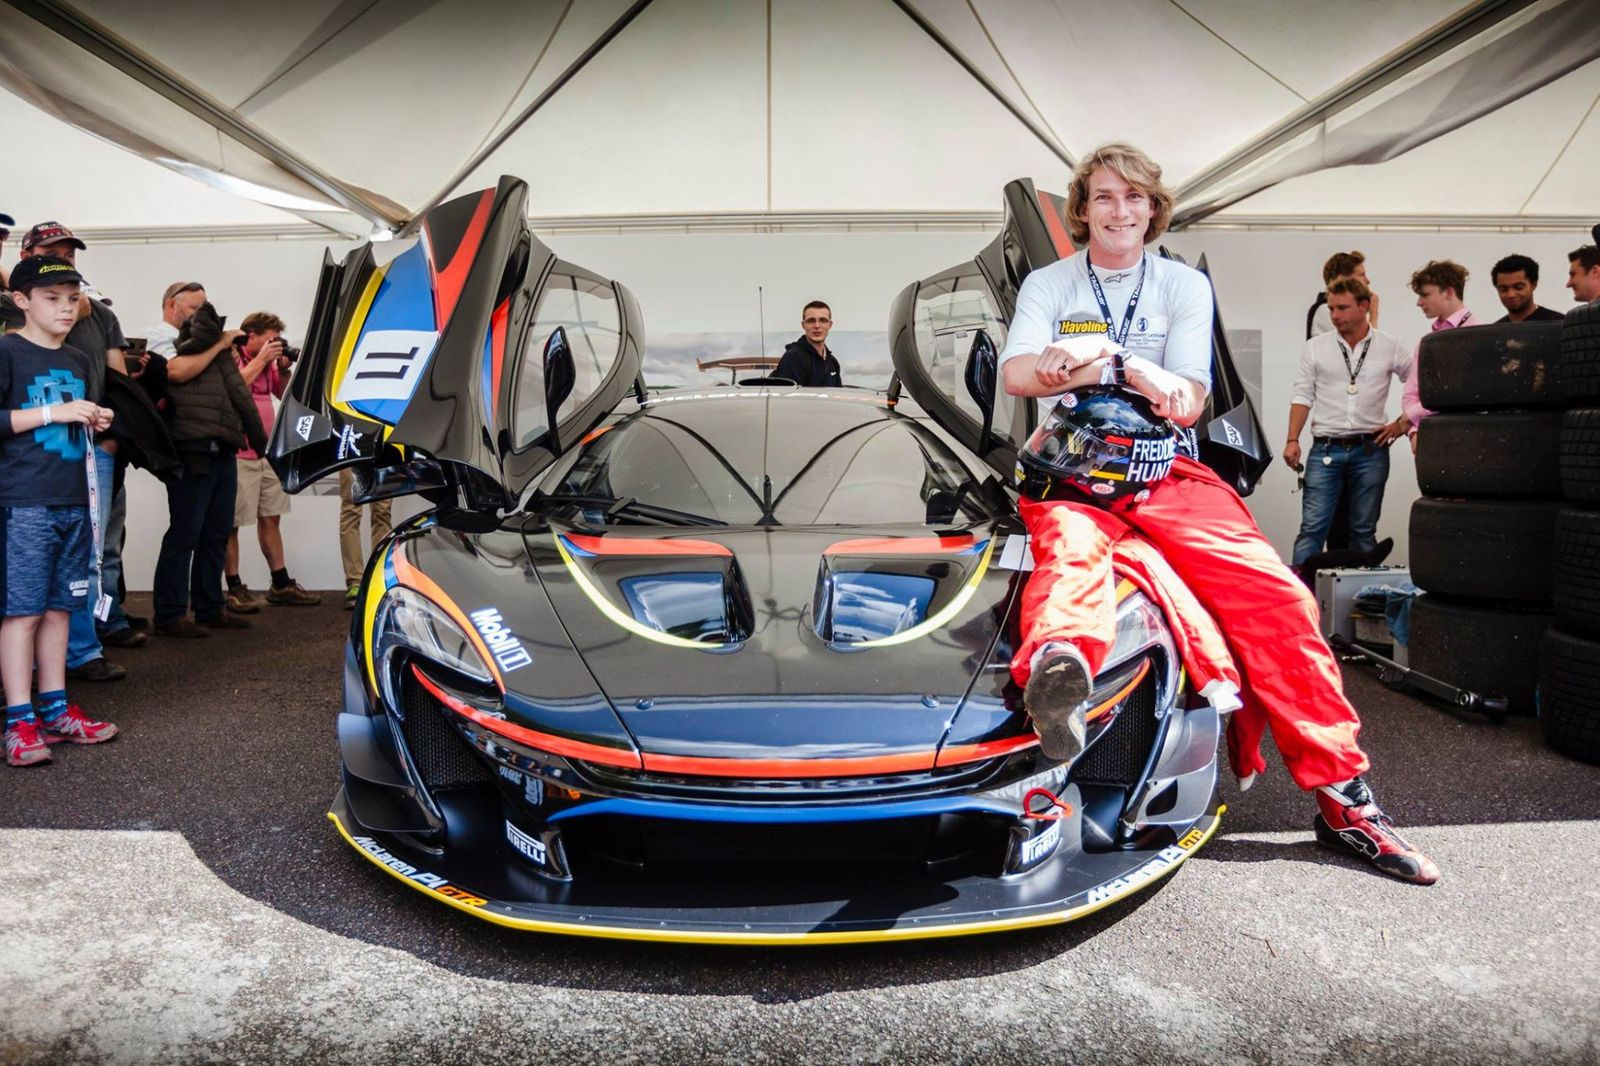 To mark 40 years since James Hunt won the F1 World Championship, McLaren produced a P1 GTR in the familiar black with red, yellow and blue stripes, a livery Hunt originally based on his Wellington College colours. Credit: DriveMag